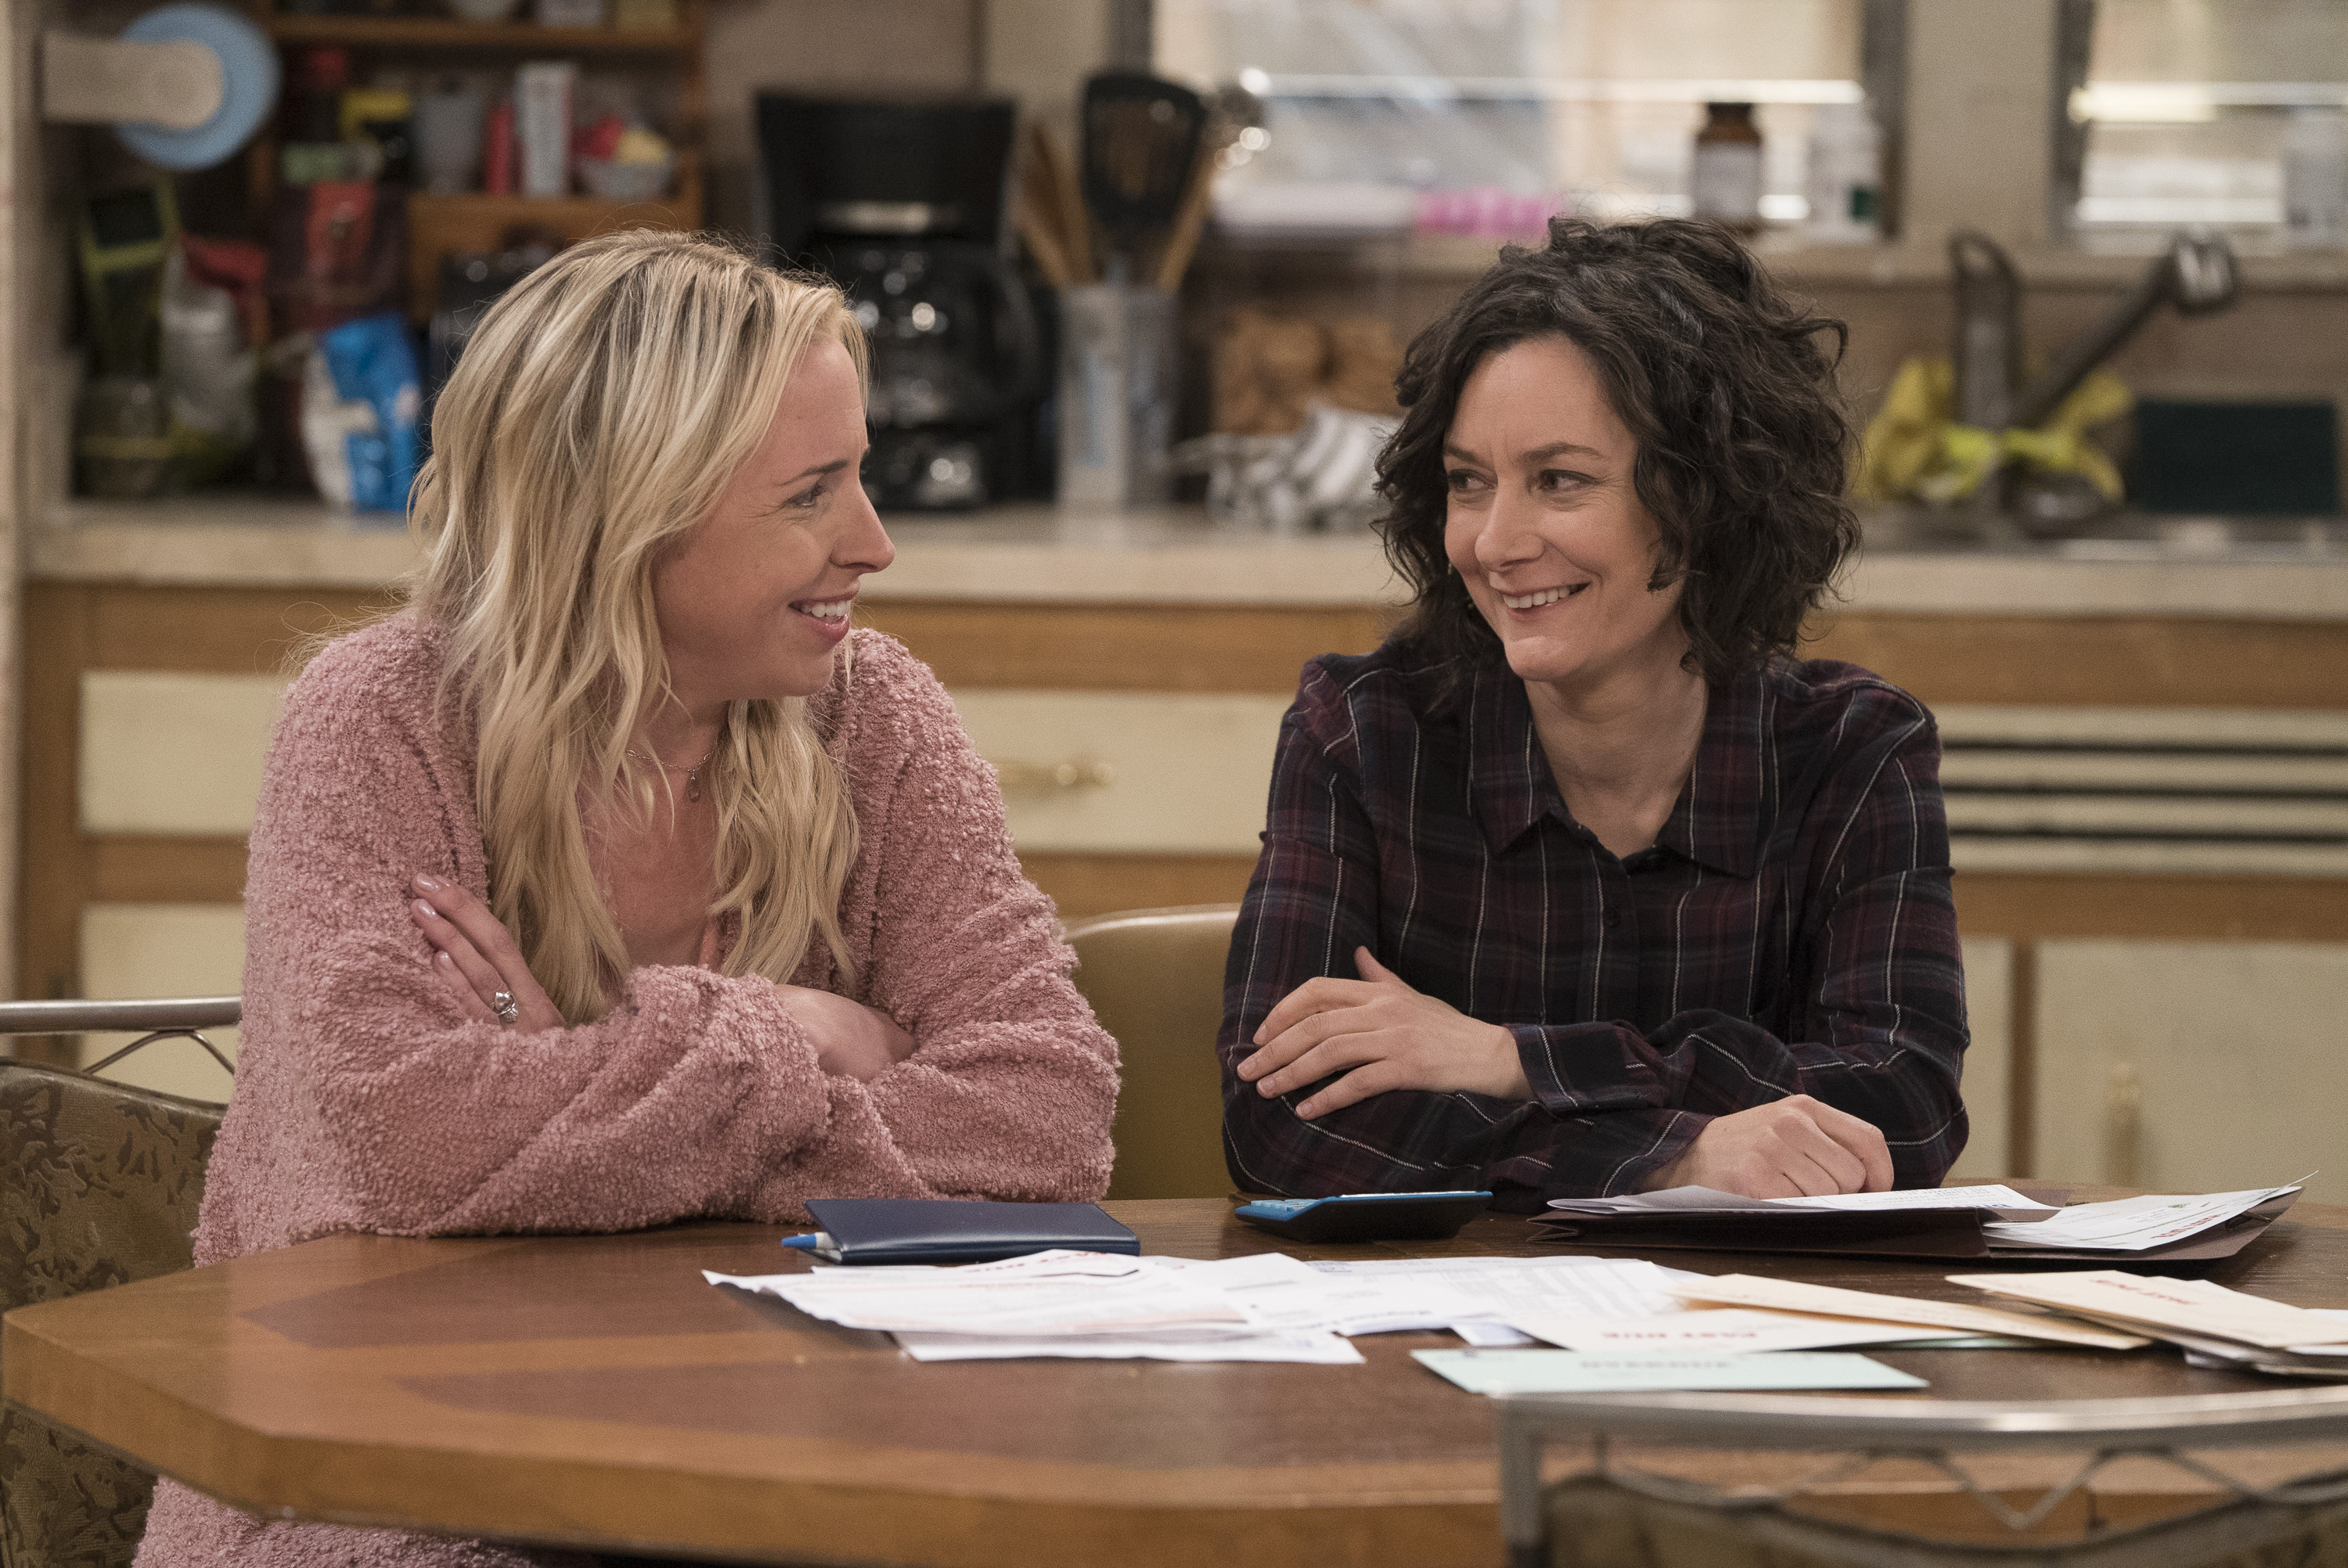 Lecy Goranson and Sara Gilbert in 'The Conners'. (Photo Credit: American Broadcasting Companies, Inc)